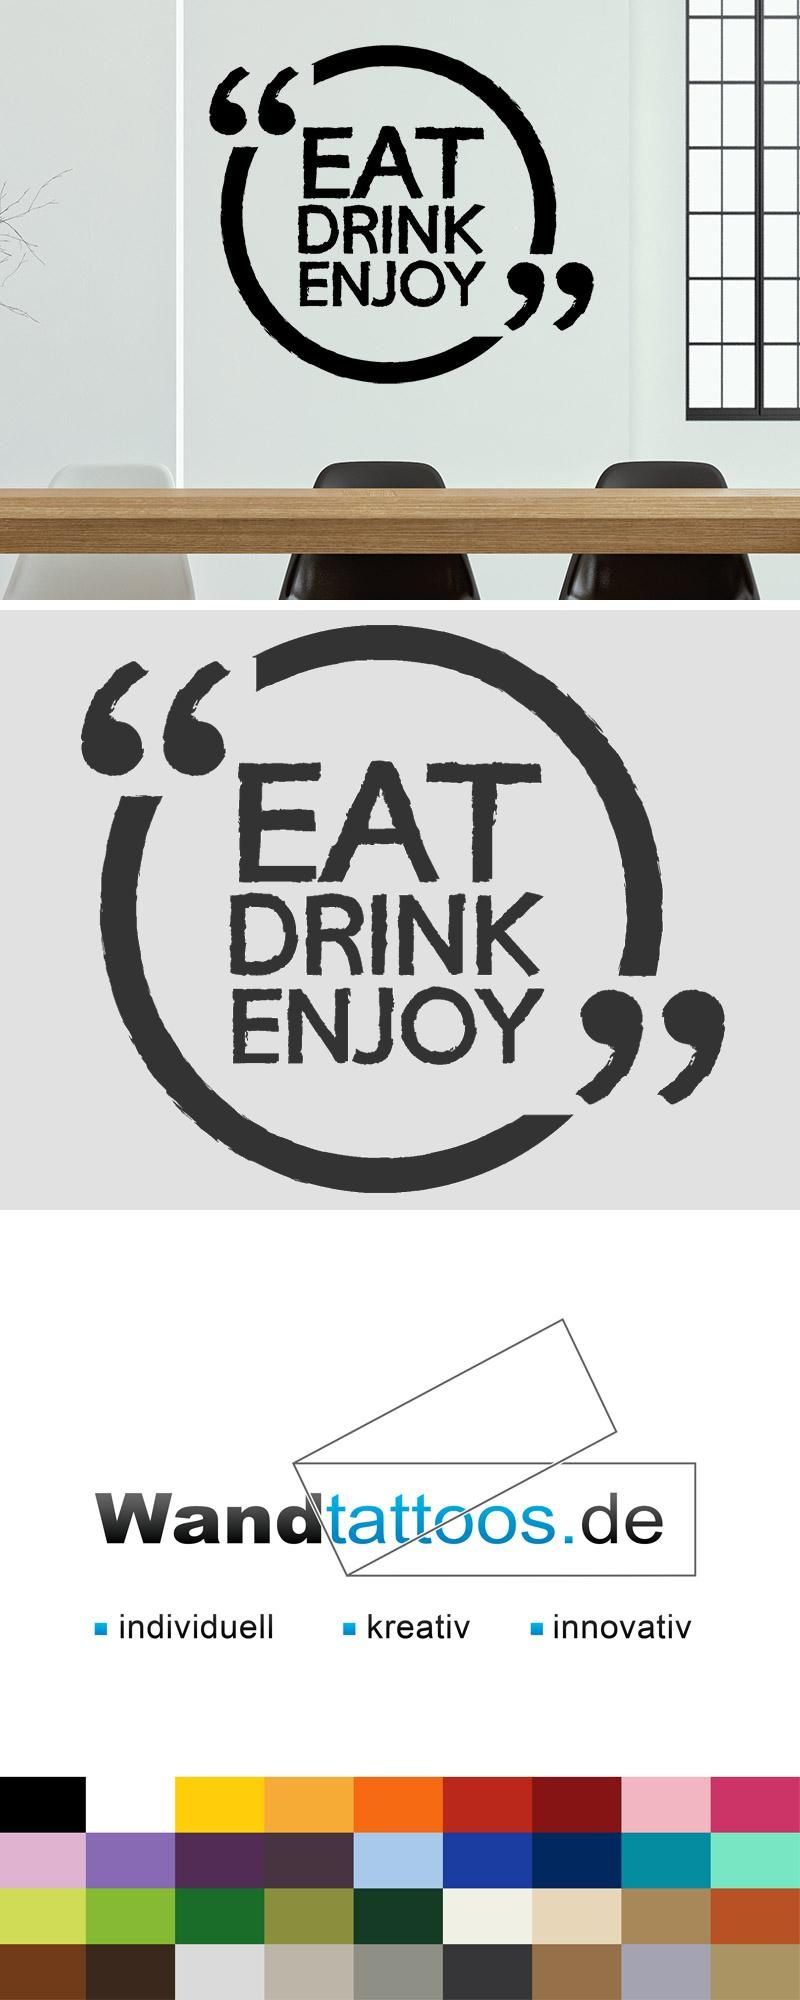 Wandtattoo Küche Retro Wandtattoo Eat Drink Enjoy In Retro Schrift In 2019 Küche